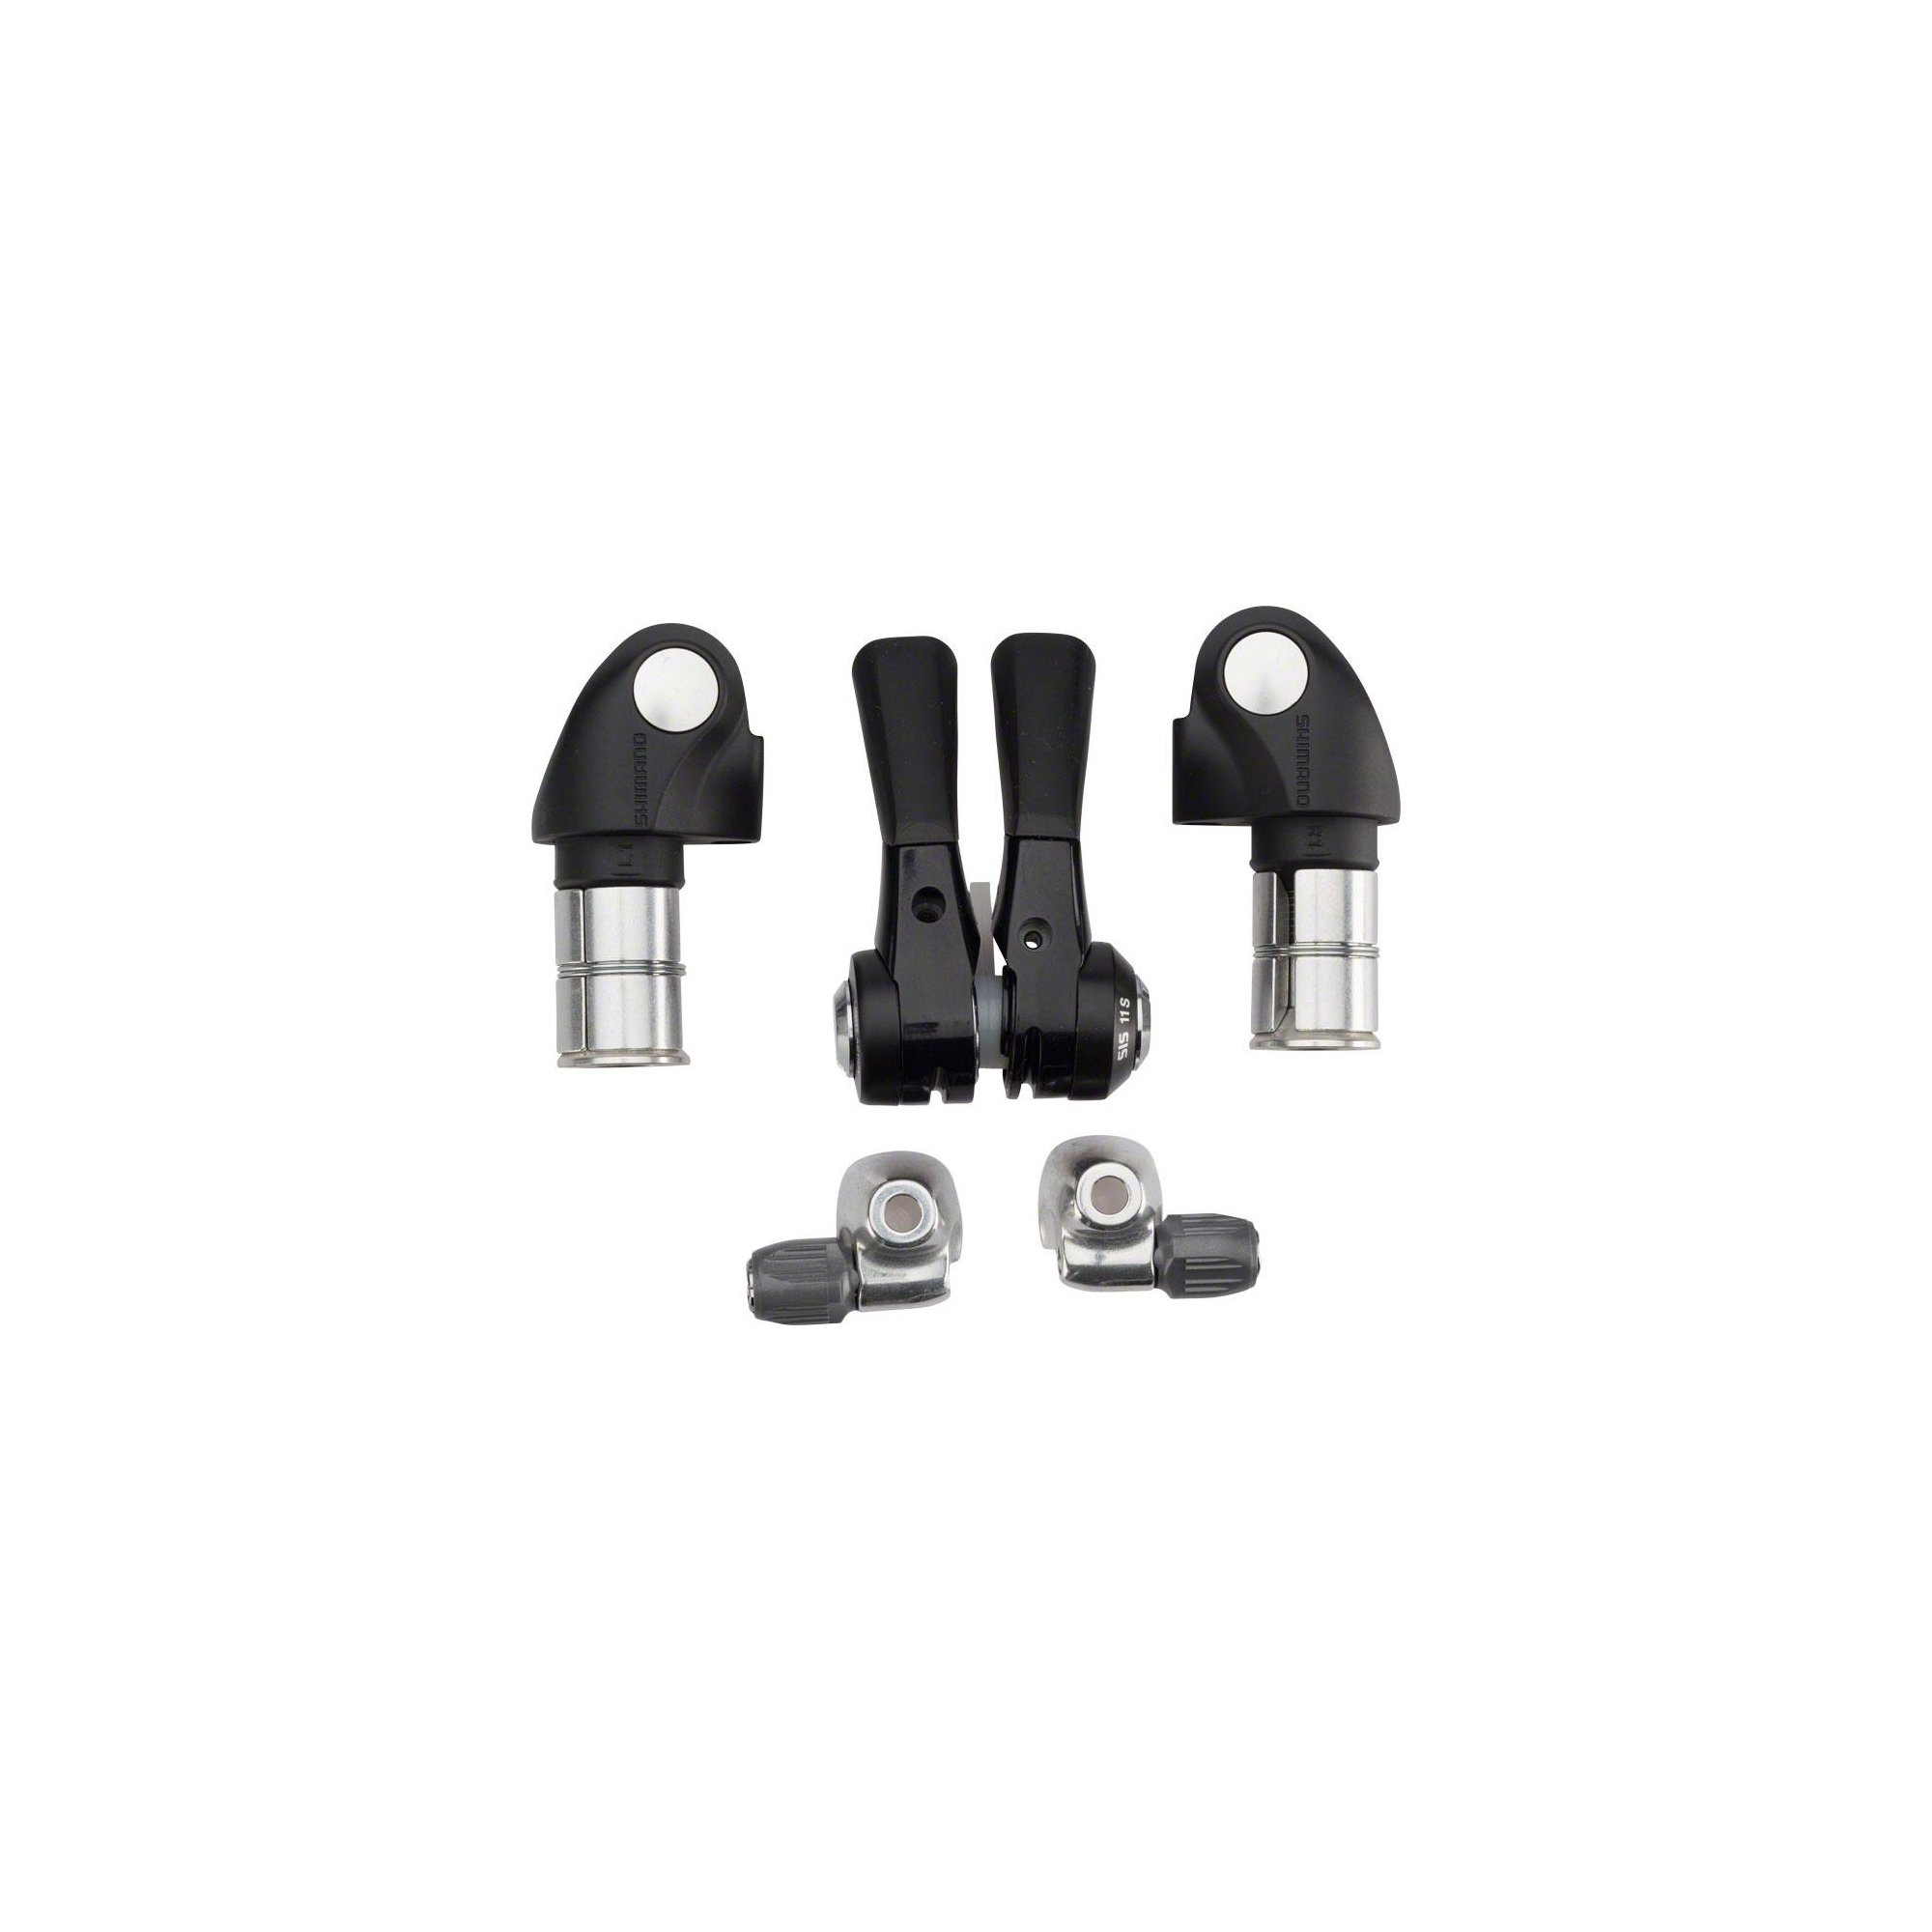 Shimano 2014 DuraAce 11-Speed Barend TT Bicycle Shifters - SL-BSR1 - ISLBSR1H1 by SHIMANO